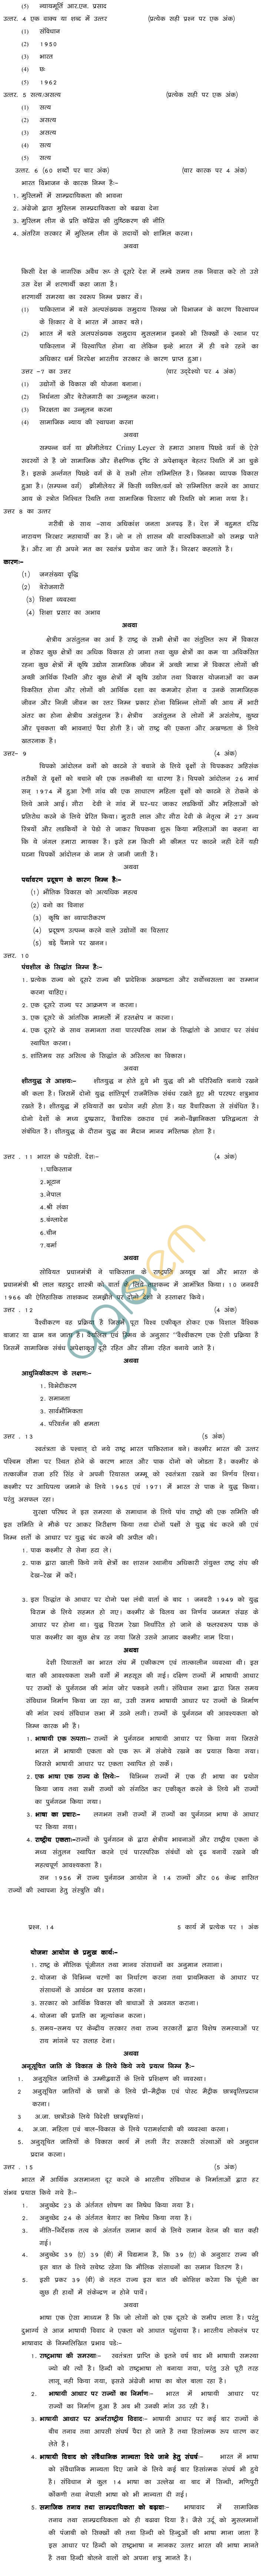 MP Board Class XII Political Science Model Questions & Answers - Set 4